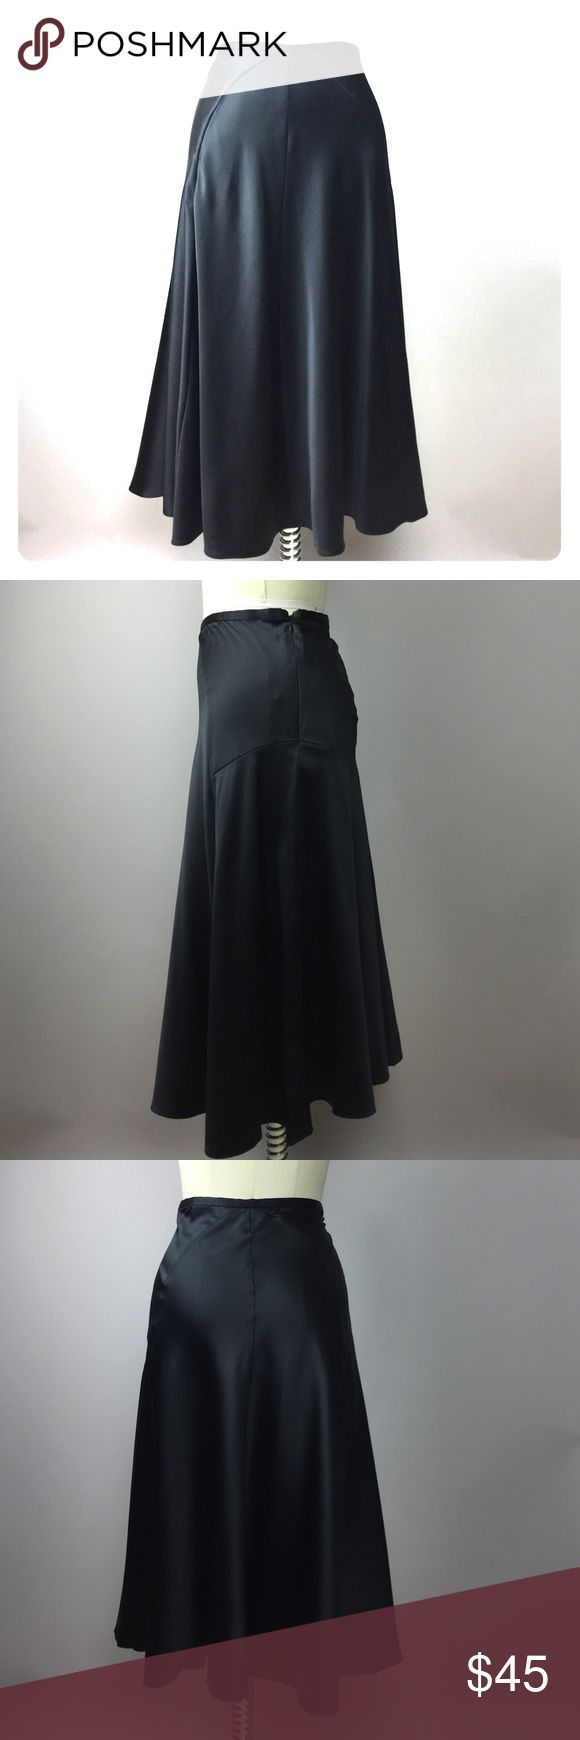 """Calvin Klein Black Silk Midi Skirt 10 So gorgeous! A staple piece every wardrobe needs. Dress it up for career wear or a night out or pair with a tee and some converse for casual wear. 95% silk, 5% lycra. Hidden side zip. 32"""" waist can be worn high or low. 28"""" length. A87M Calvin Klein Skirts Midi"""